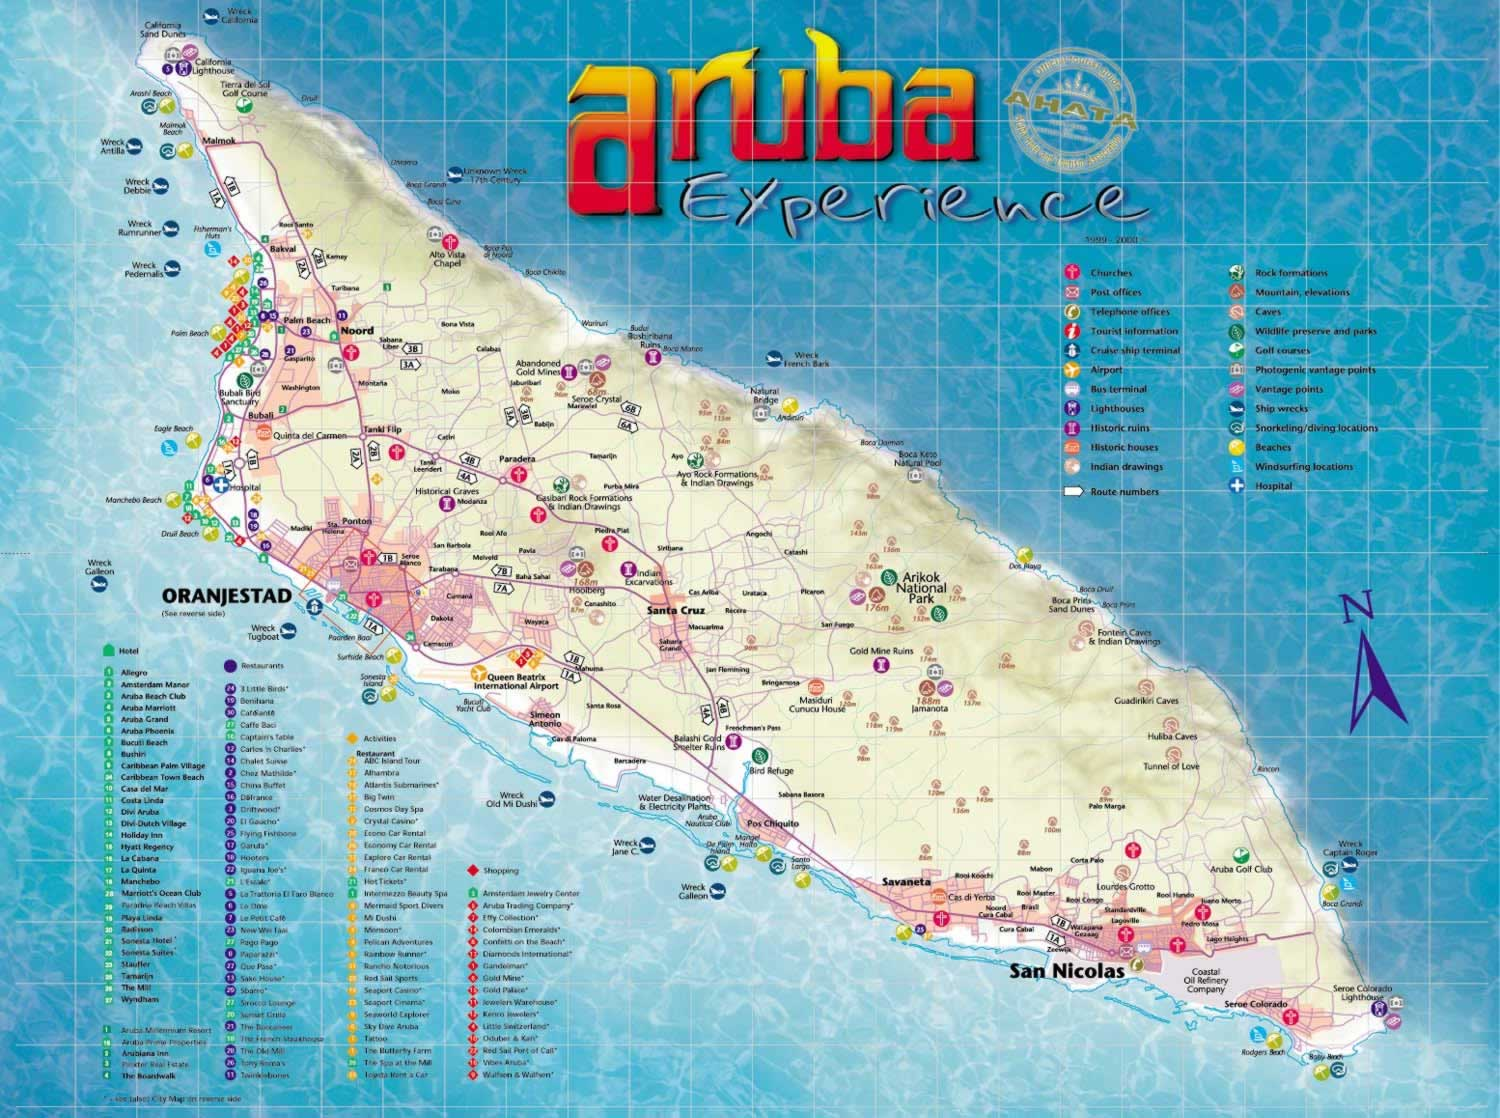 Aruba Tourist Map Aruba Mappery - Caribbean map aruba